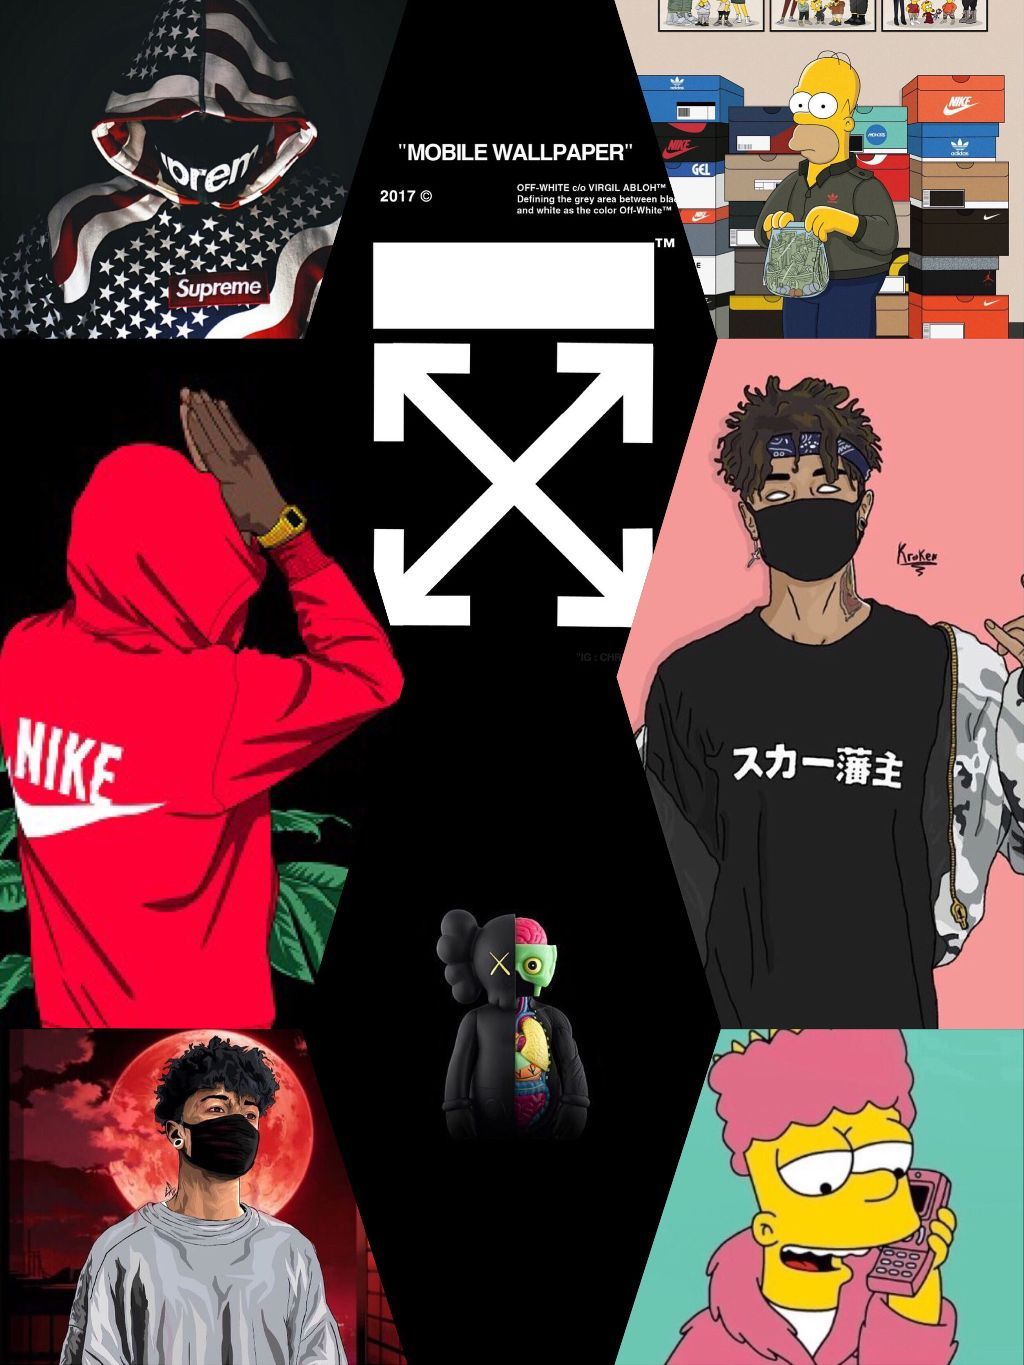 Mad Anime Hypebeast Wallpapers On Wallpaperdog See more ideas about anime, aesthetic anime, anime icons. mad anime hypebeast wallpapers on